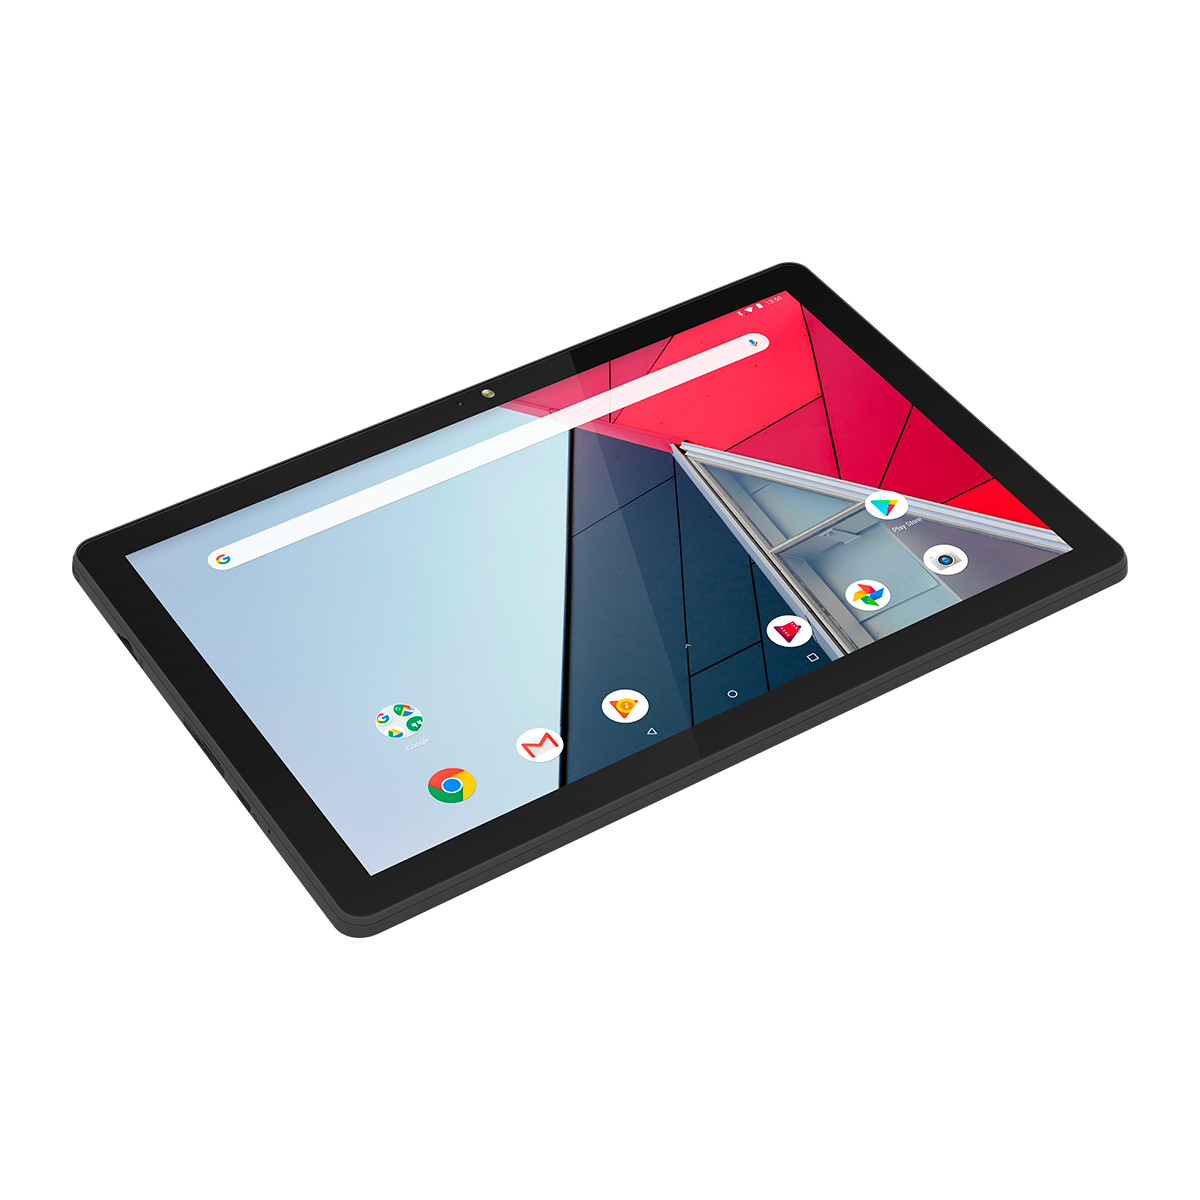 TREKSTOR Surftab Y10: New Android tablet as WiFi and LTE version